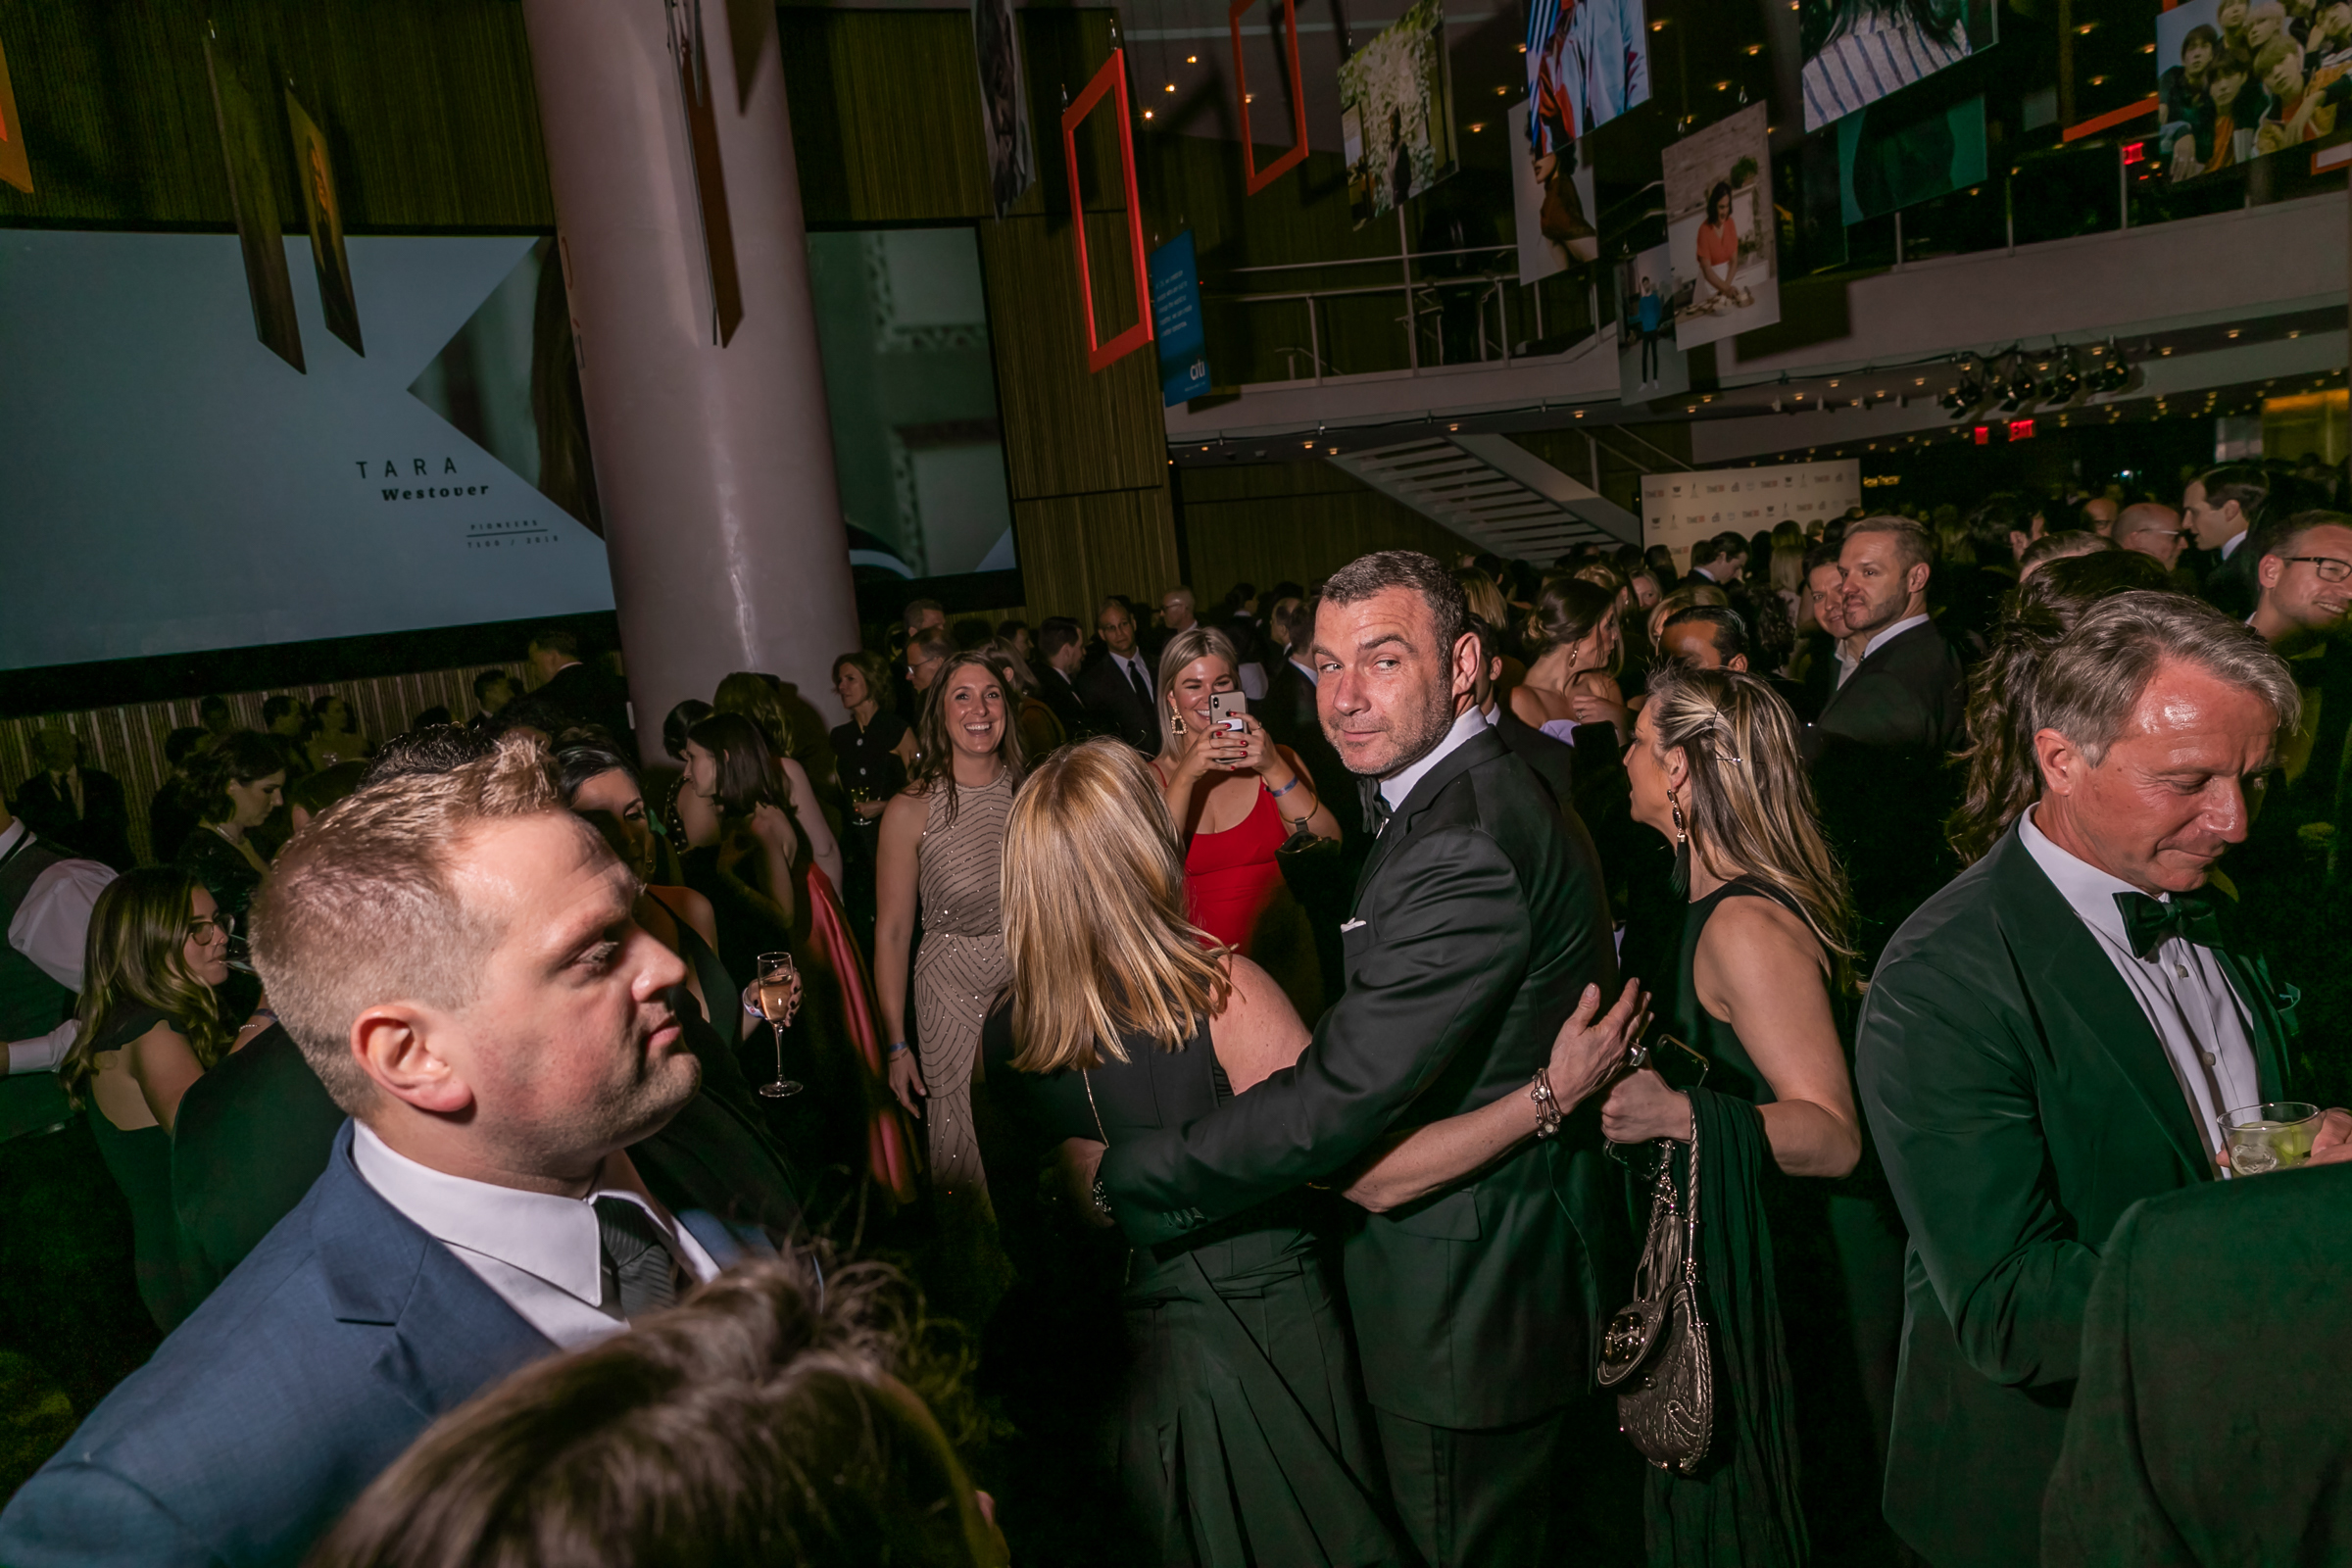 Liev Schreiber at the Time 100 Gala at Jazz at Lincoln Center in New York City on April 23, 2019.